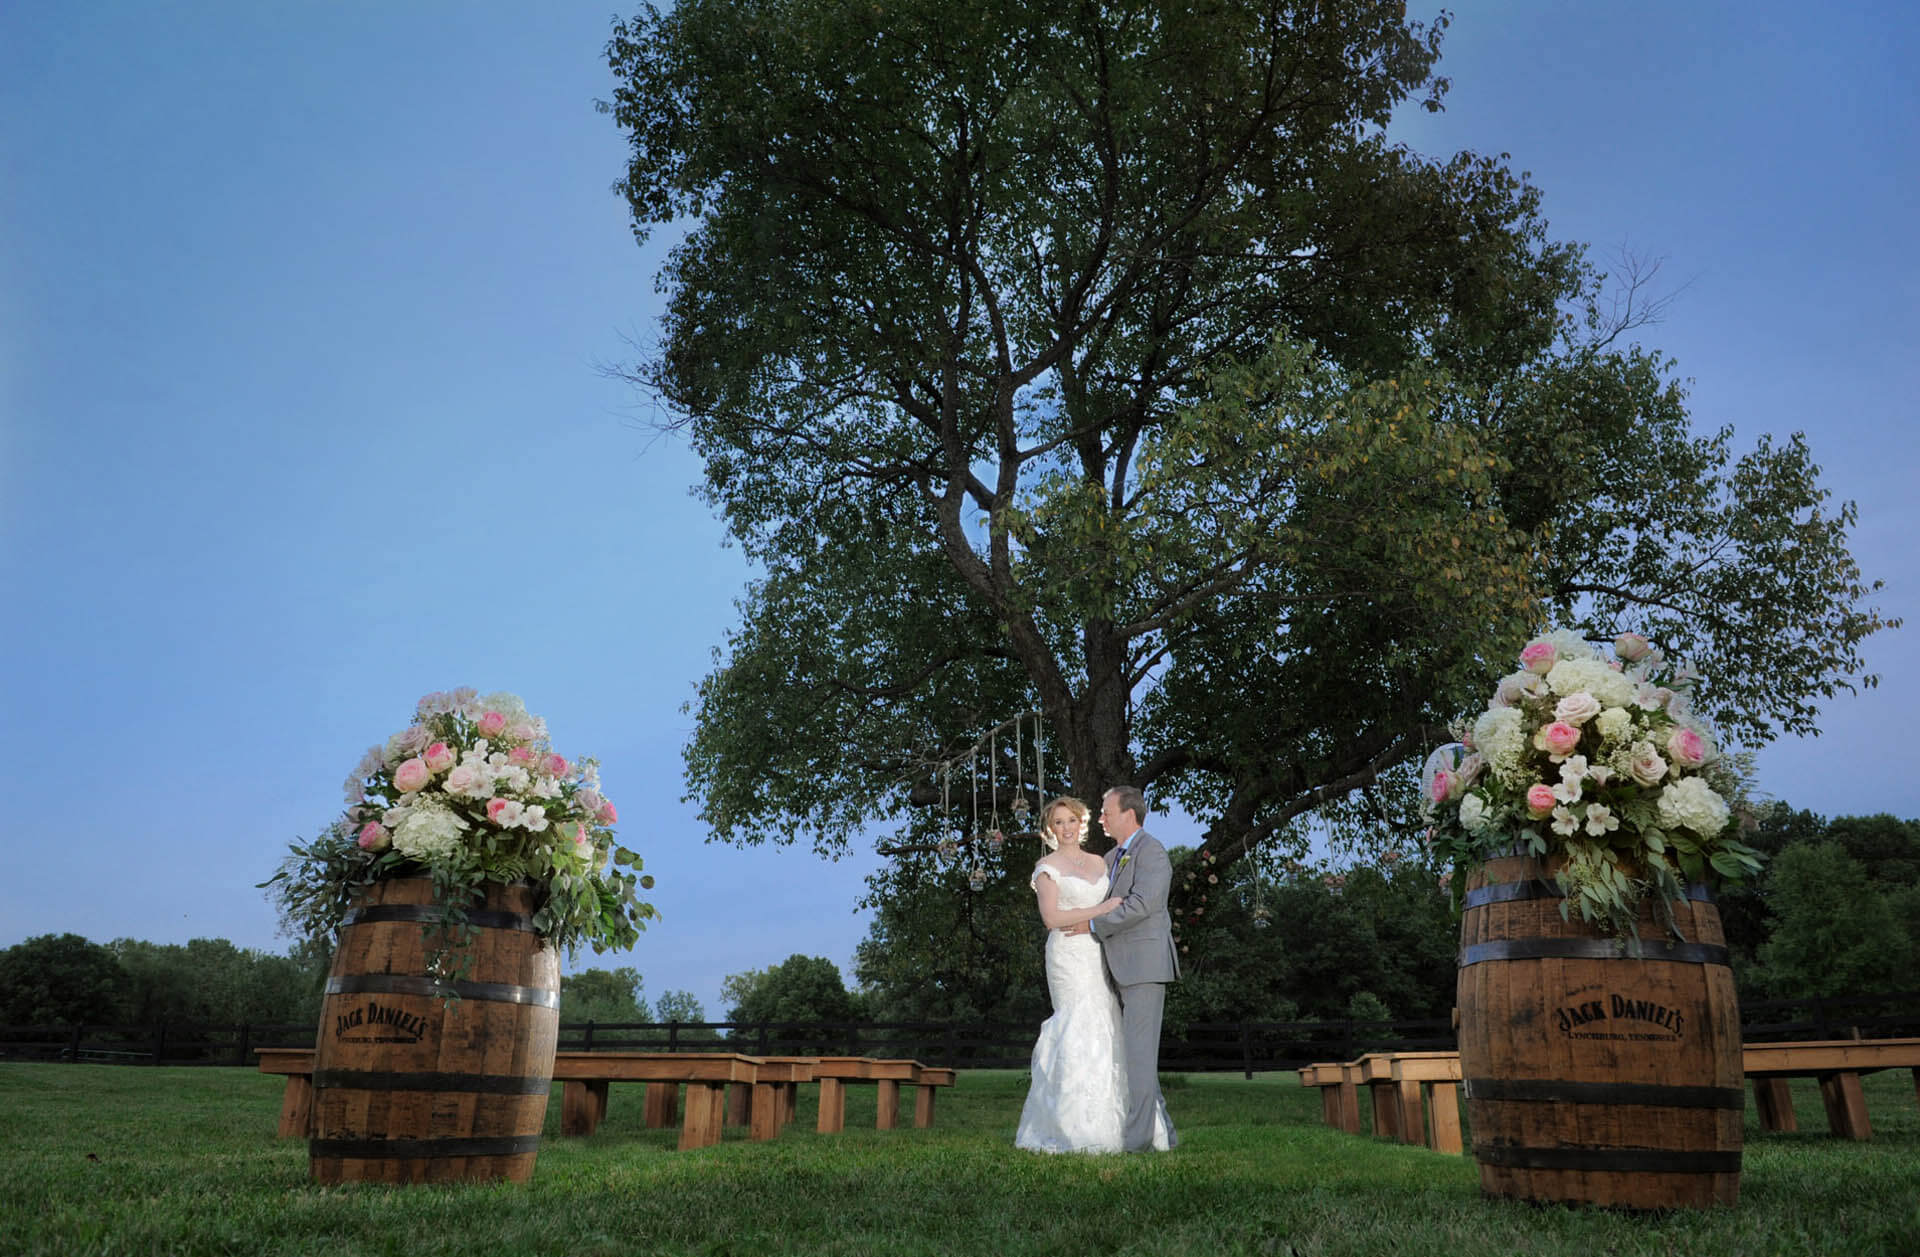 The bride and groom pose after their barn wedding at the Holly Hotel in Holly, Michigan.